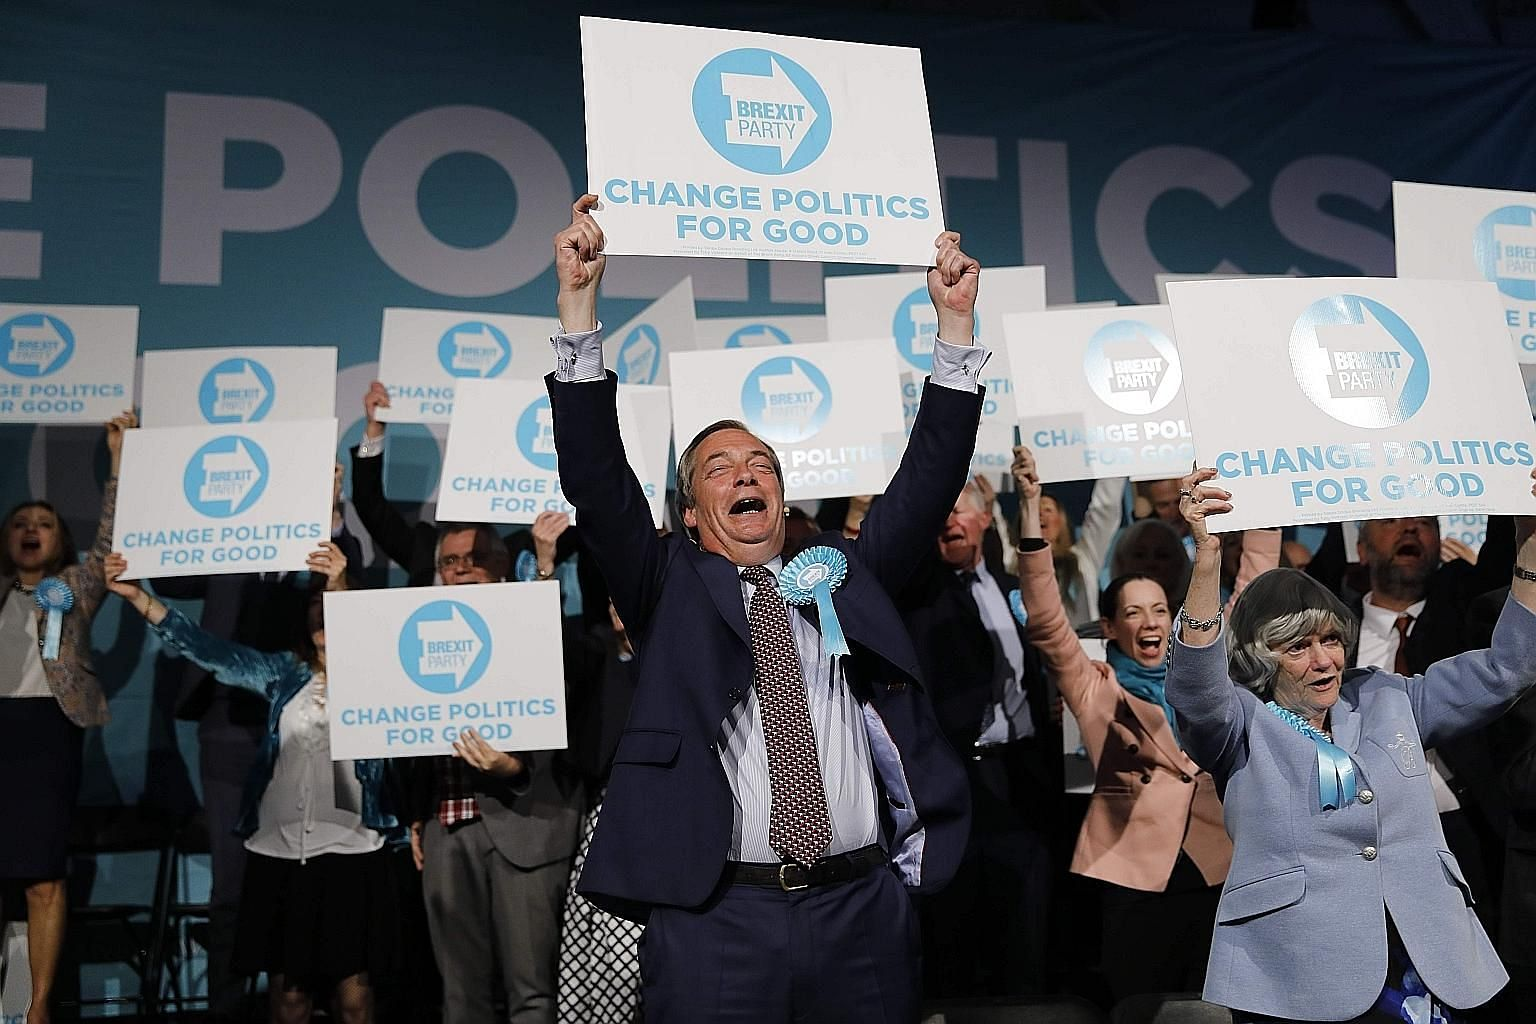 Brexit Party leader Nigel Farage (centre) and his supporters at the end of a European Parliament election campaign rally in Olympia London on Tuesday. Current opinion polls indicate that Mr Farage's party will top the British ballot, and is projected